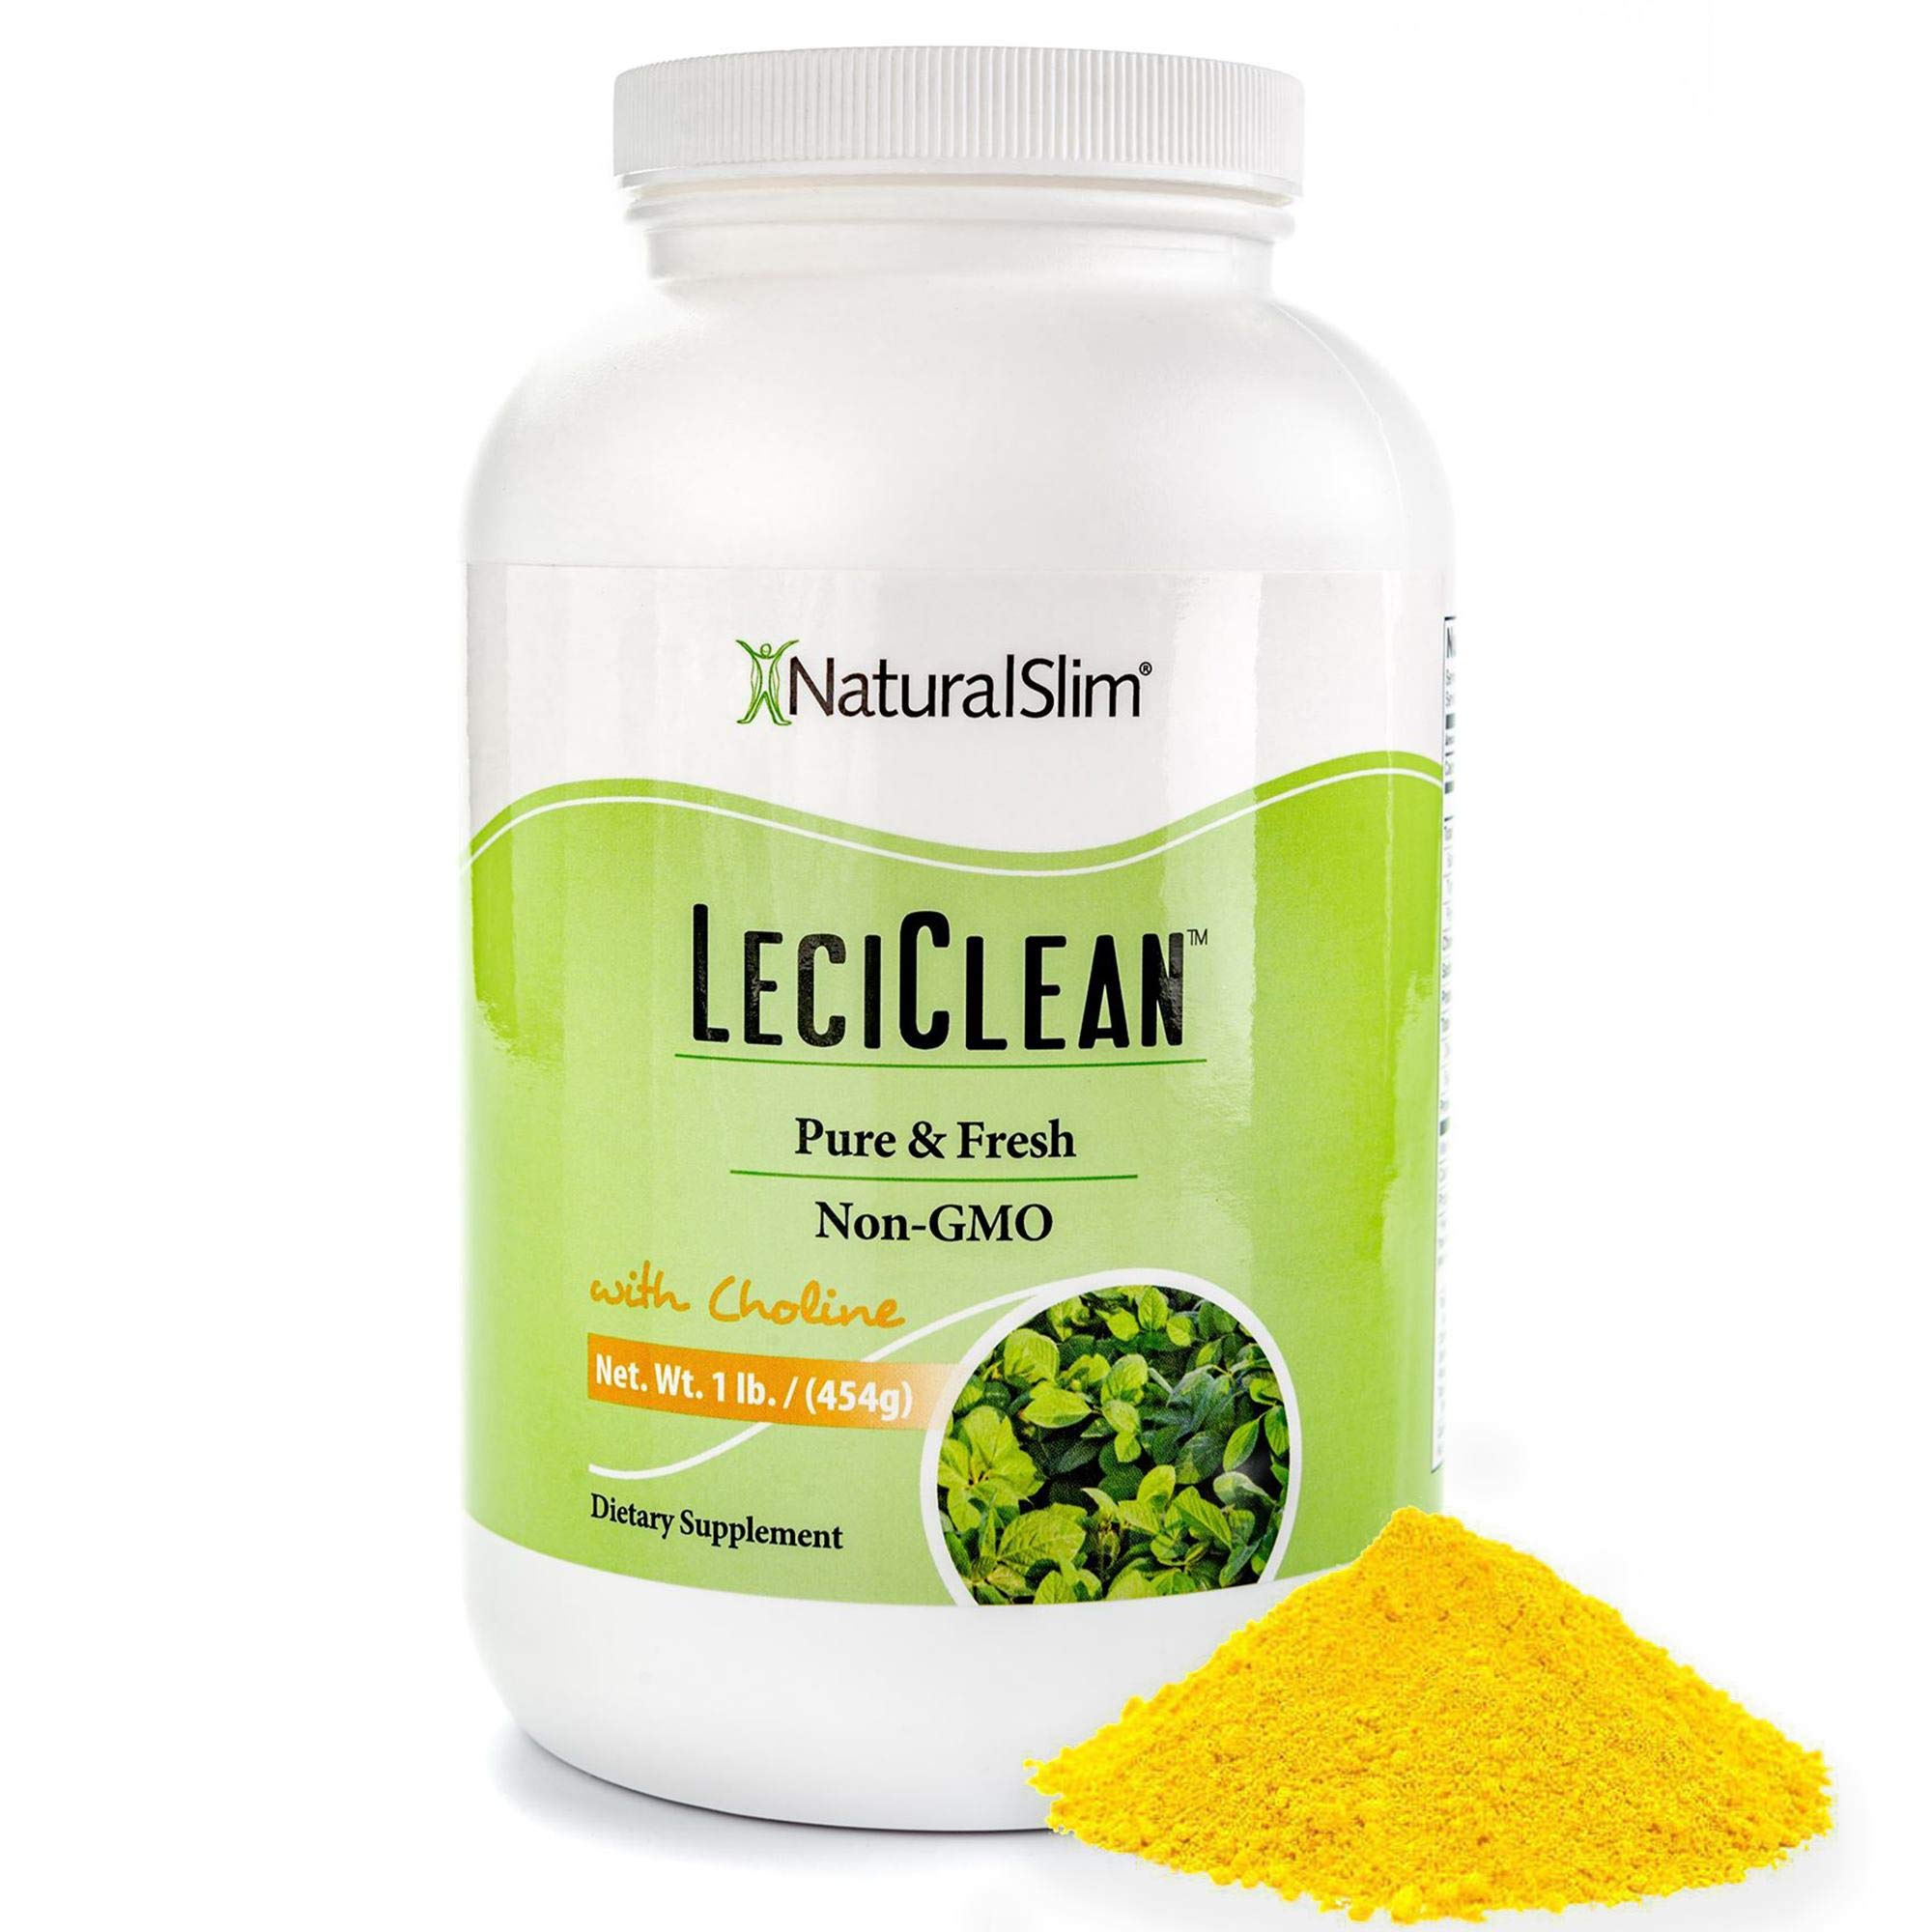 NaturalSlim Non GMO Lecithin Granules with Choline - 100% Pure Powder Dieatary Supplements - Easily Dissolves in Protein Shake for Metabolismo Support